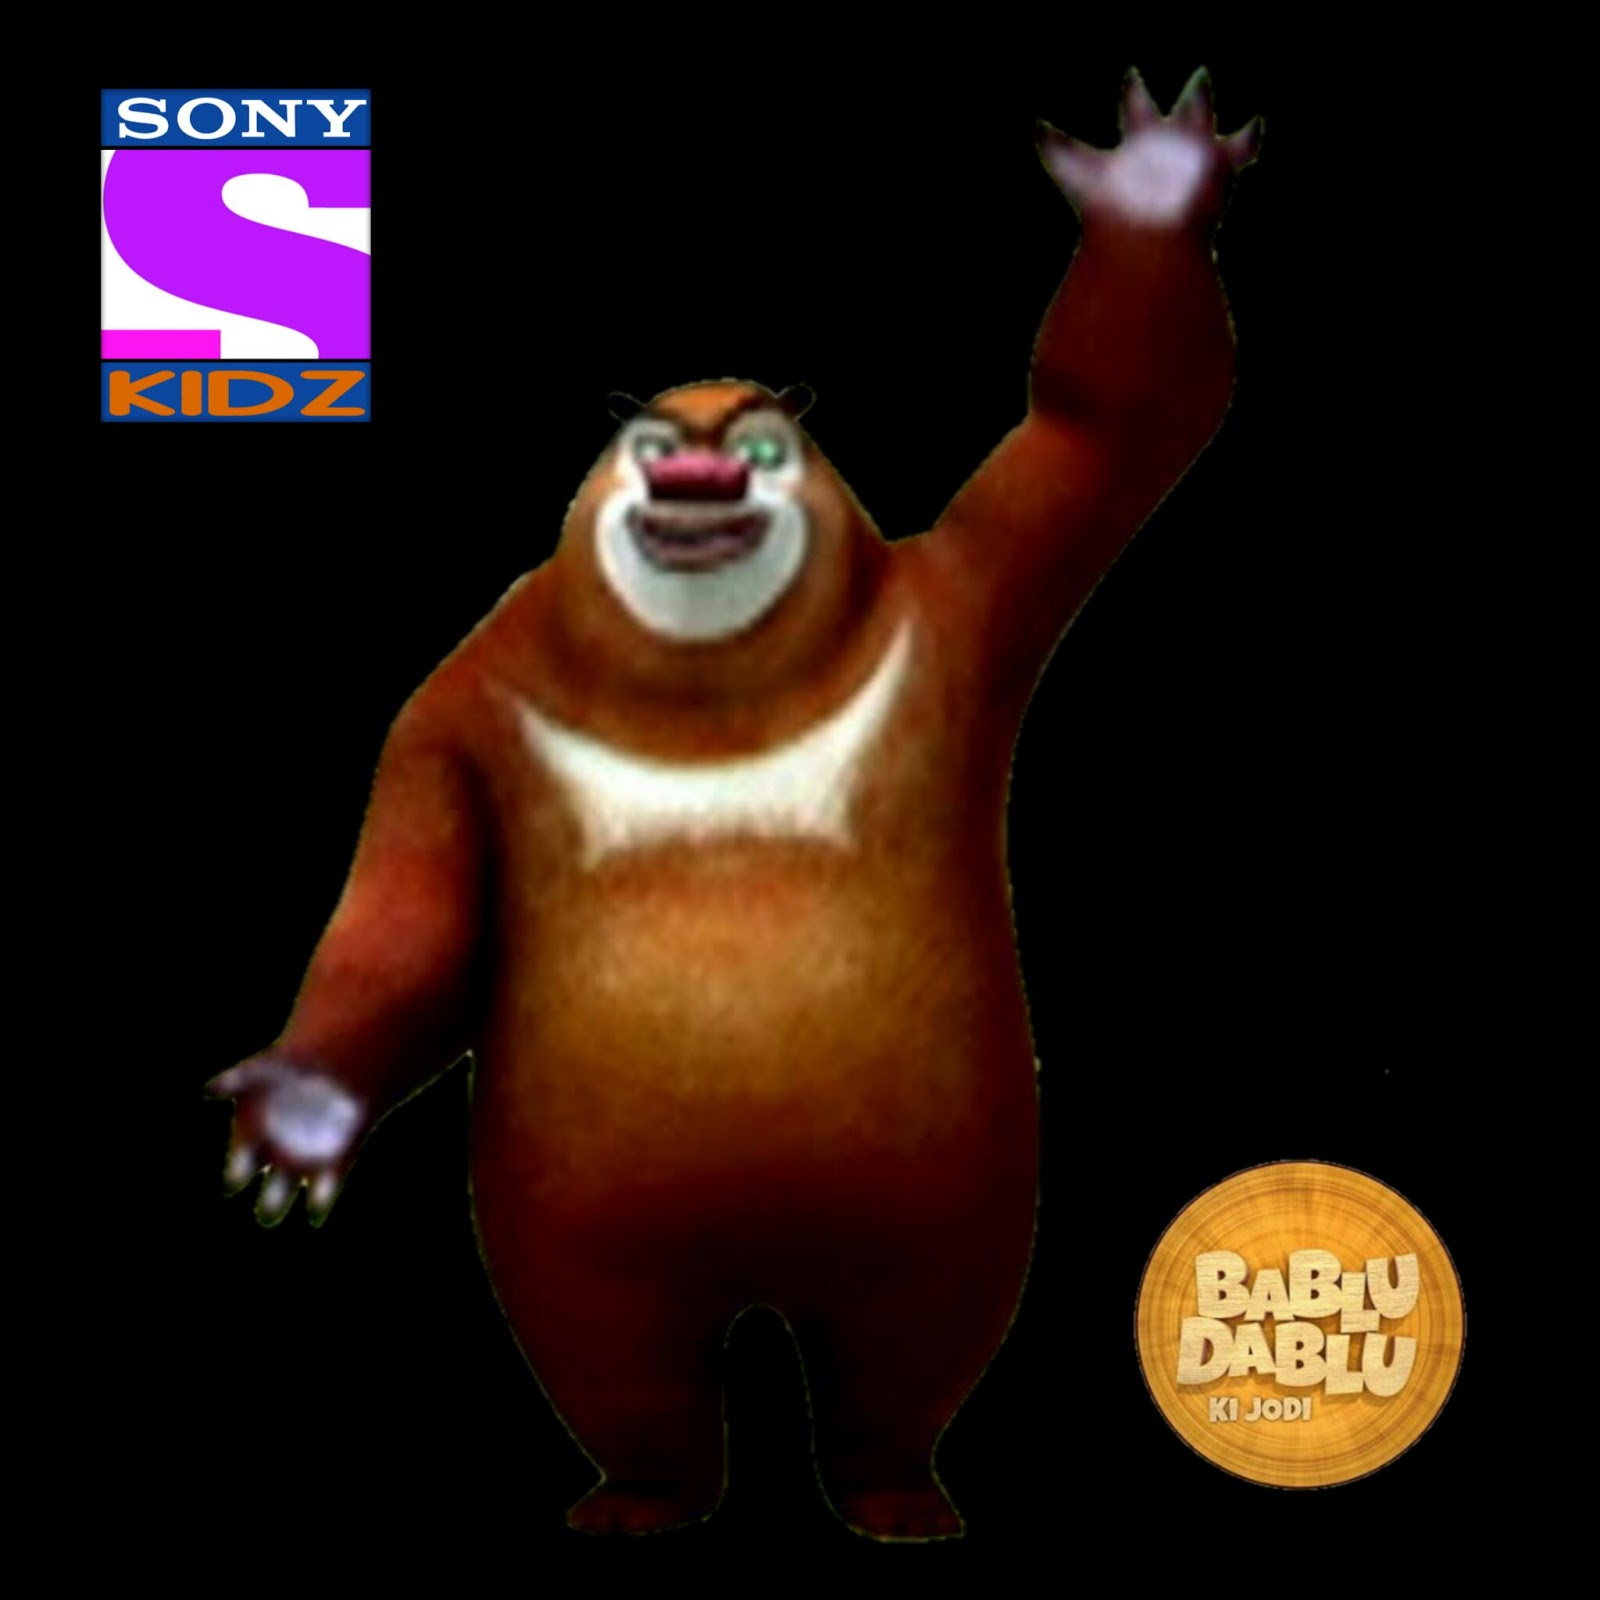 SONY KIDZ TV: bablu dablu cartoon bablu dablu download bablu